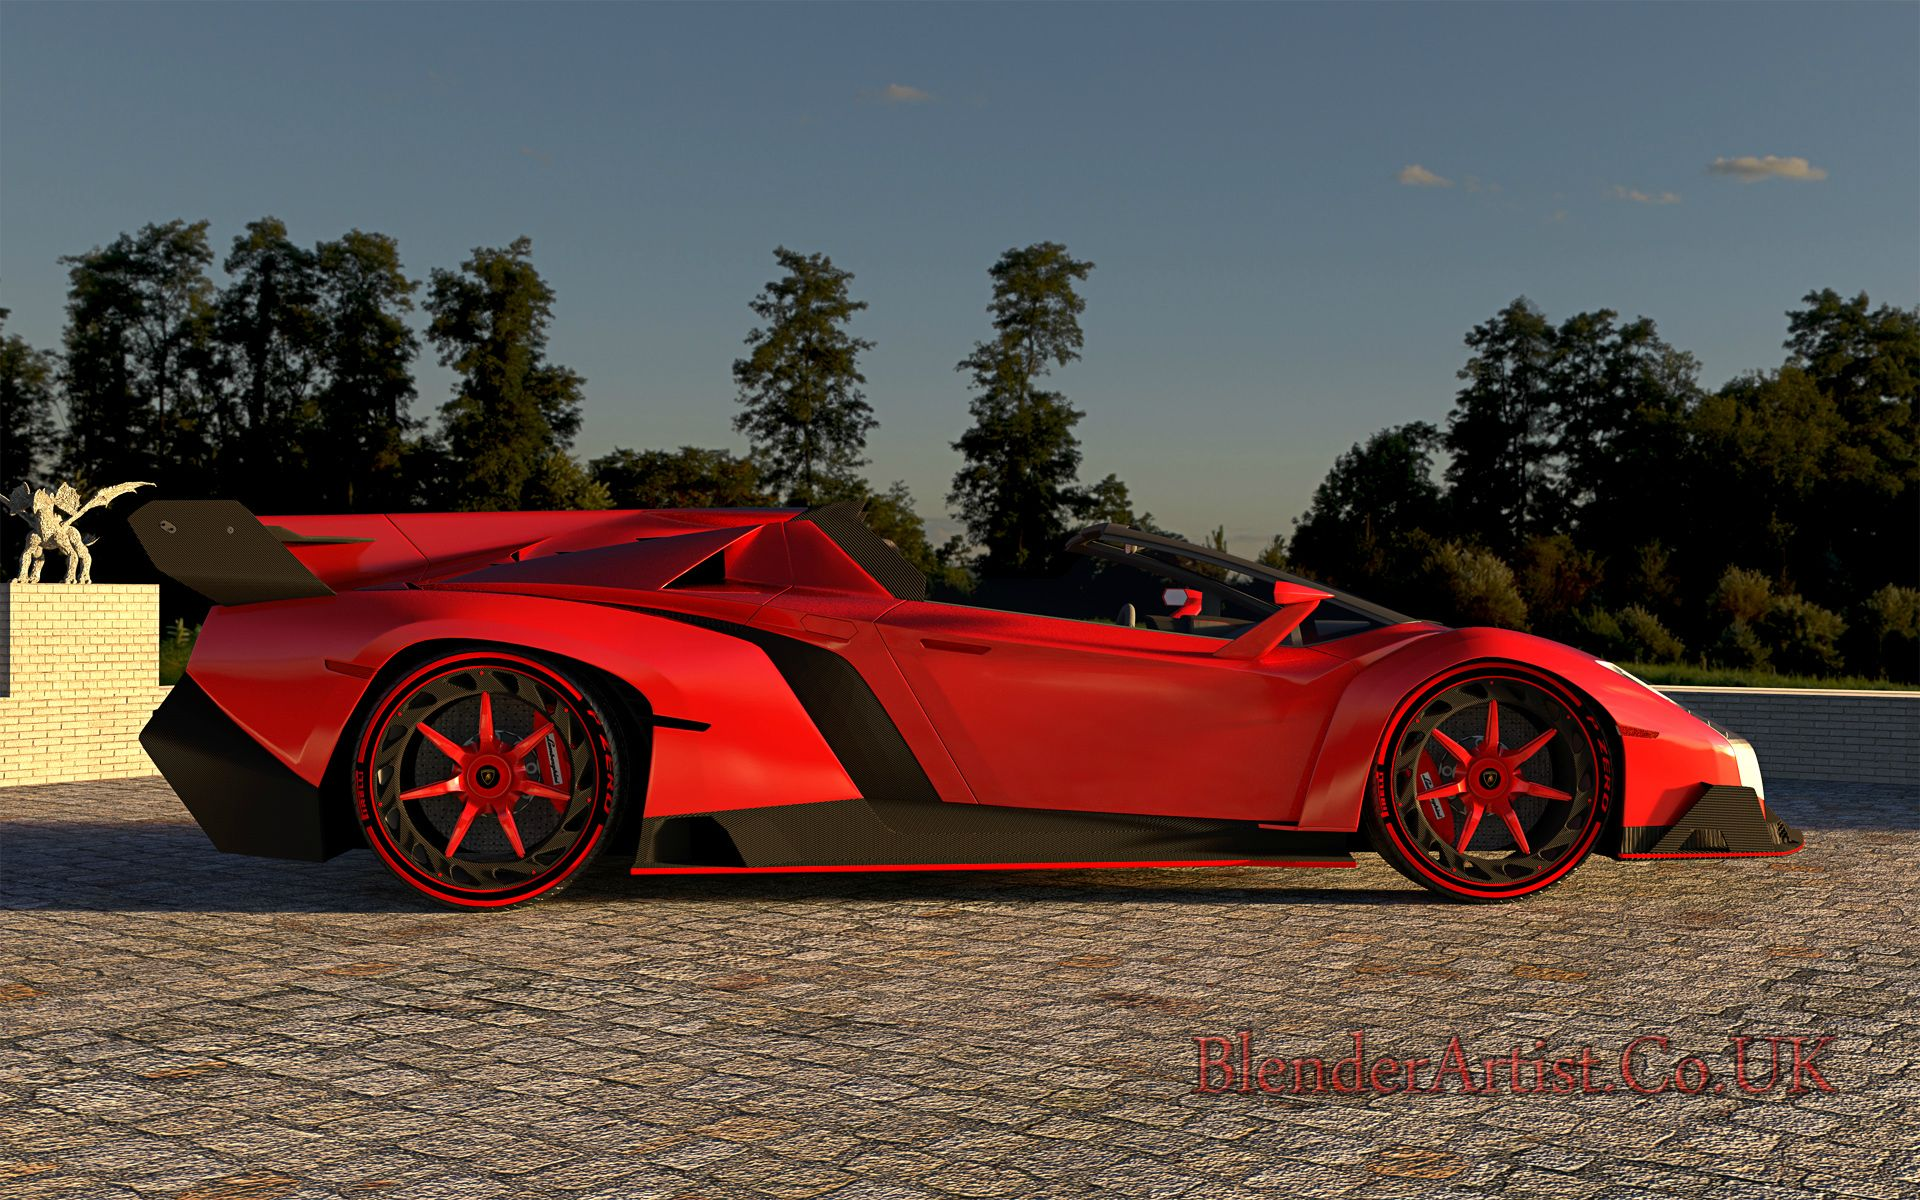 Veneno Side View At Summer Sunset. © BlenderArtist.Co.Uk 2014.